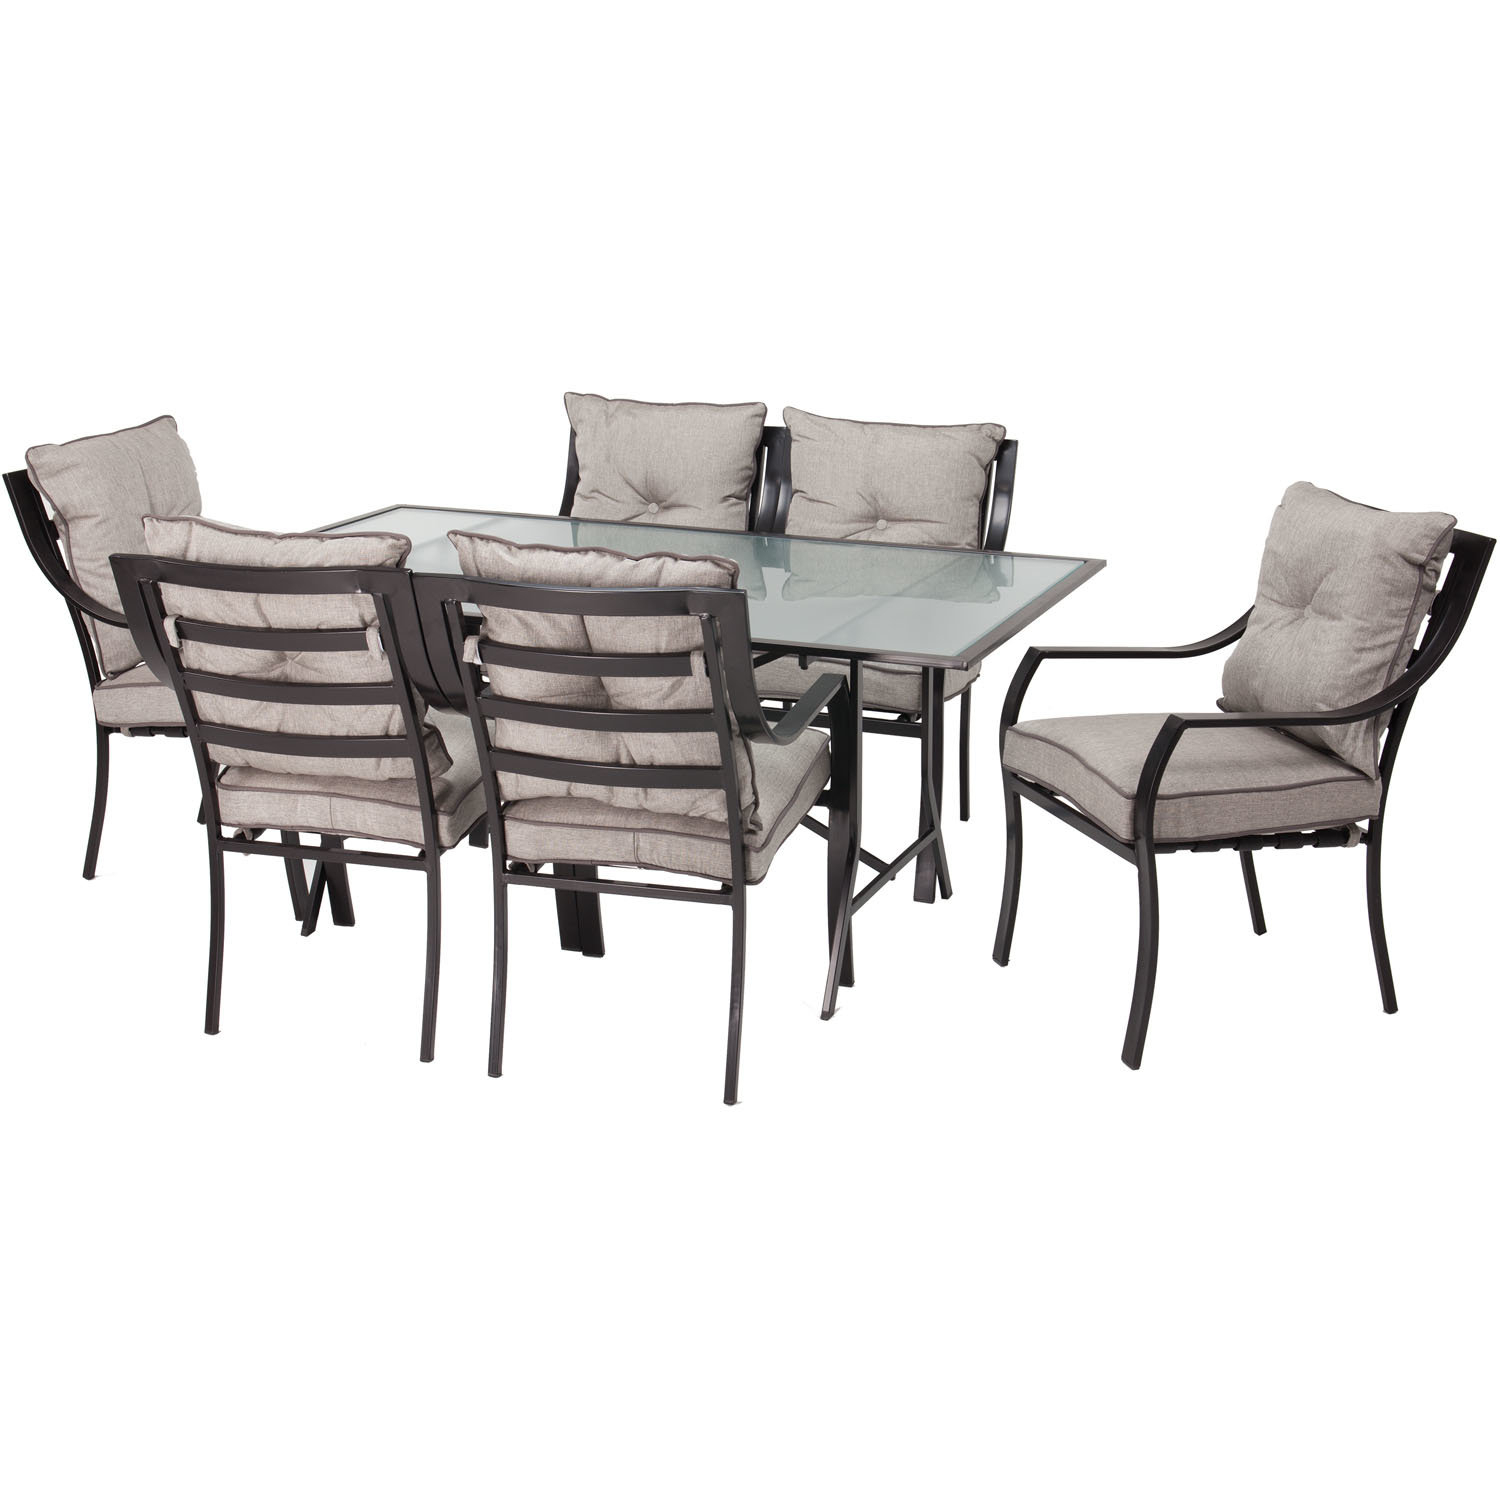 Joss & Main Throughout Current Miskell 3 Piece Dining Sets (View 19 of 20)